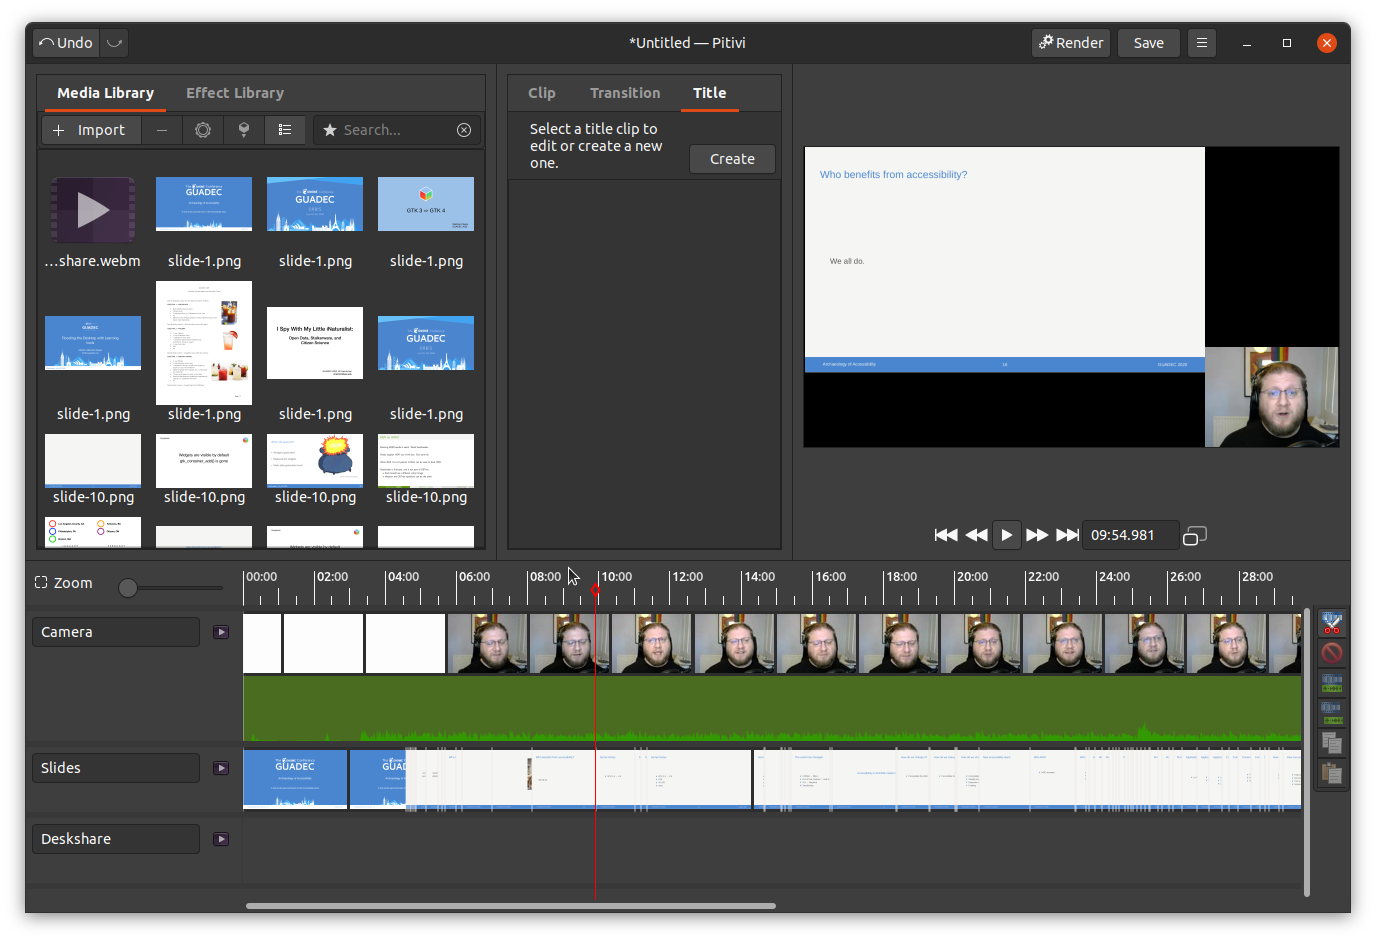 screenshot of Pitivi video editor